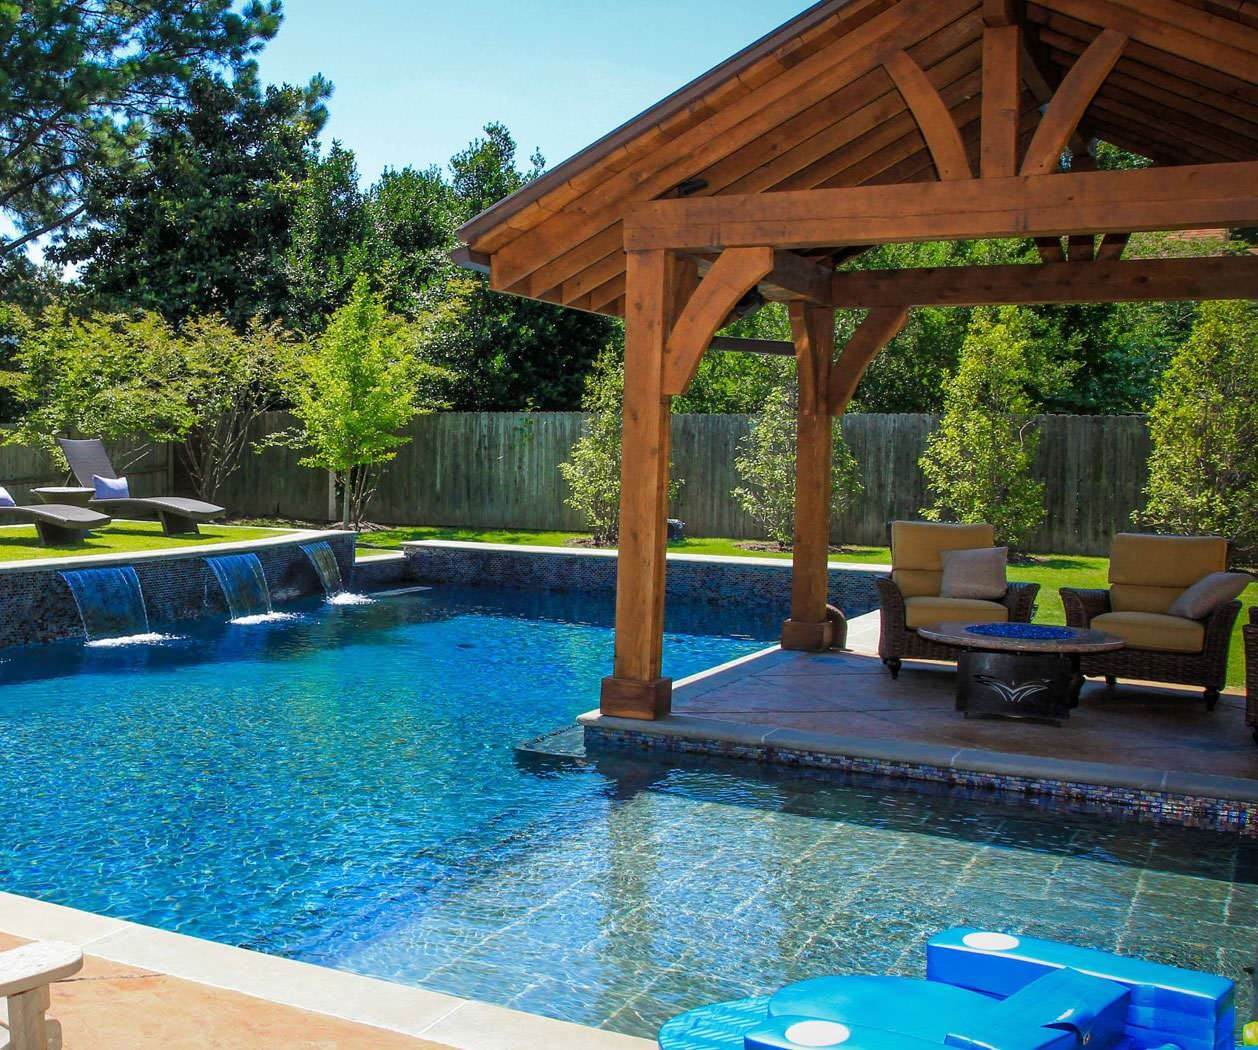 Average Cost For Inground Pool | Top Home Information